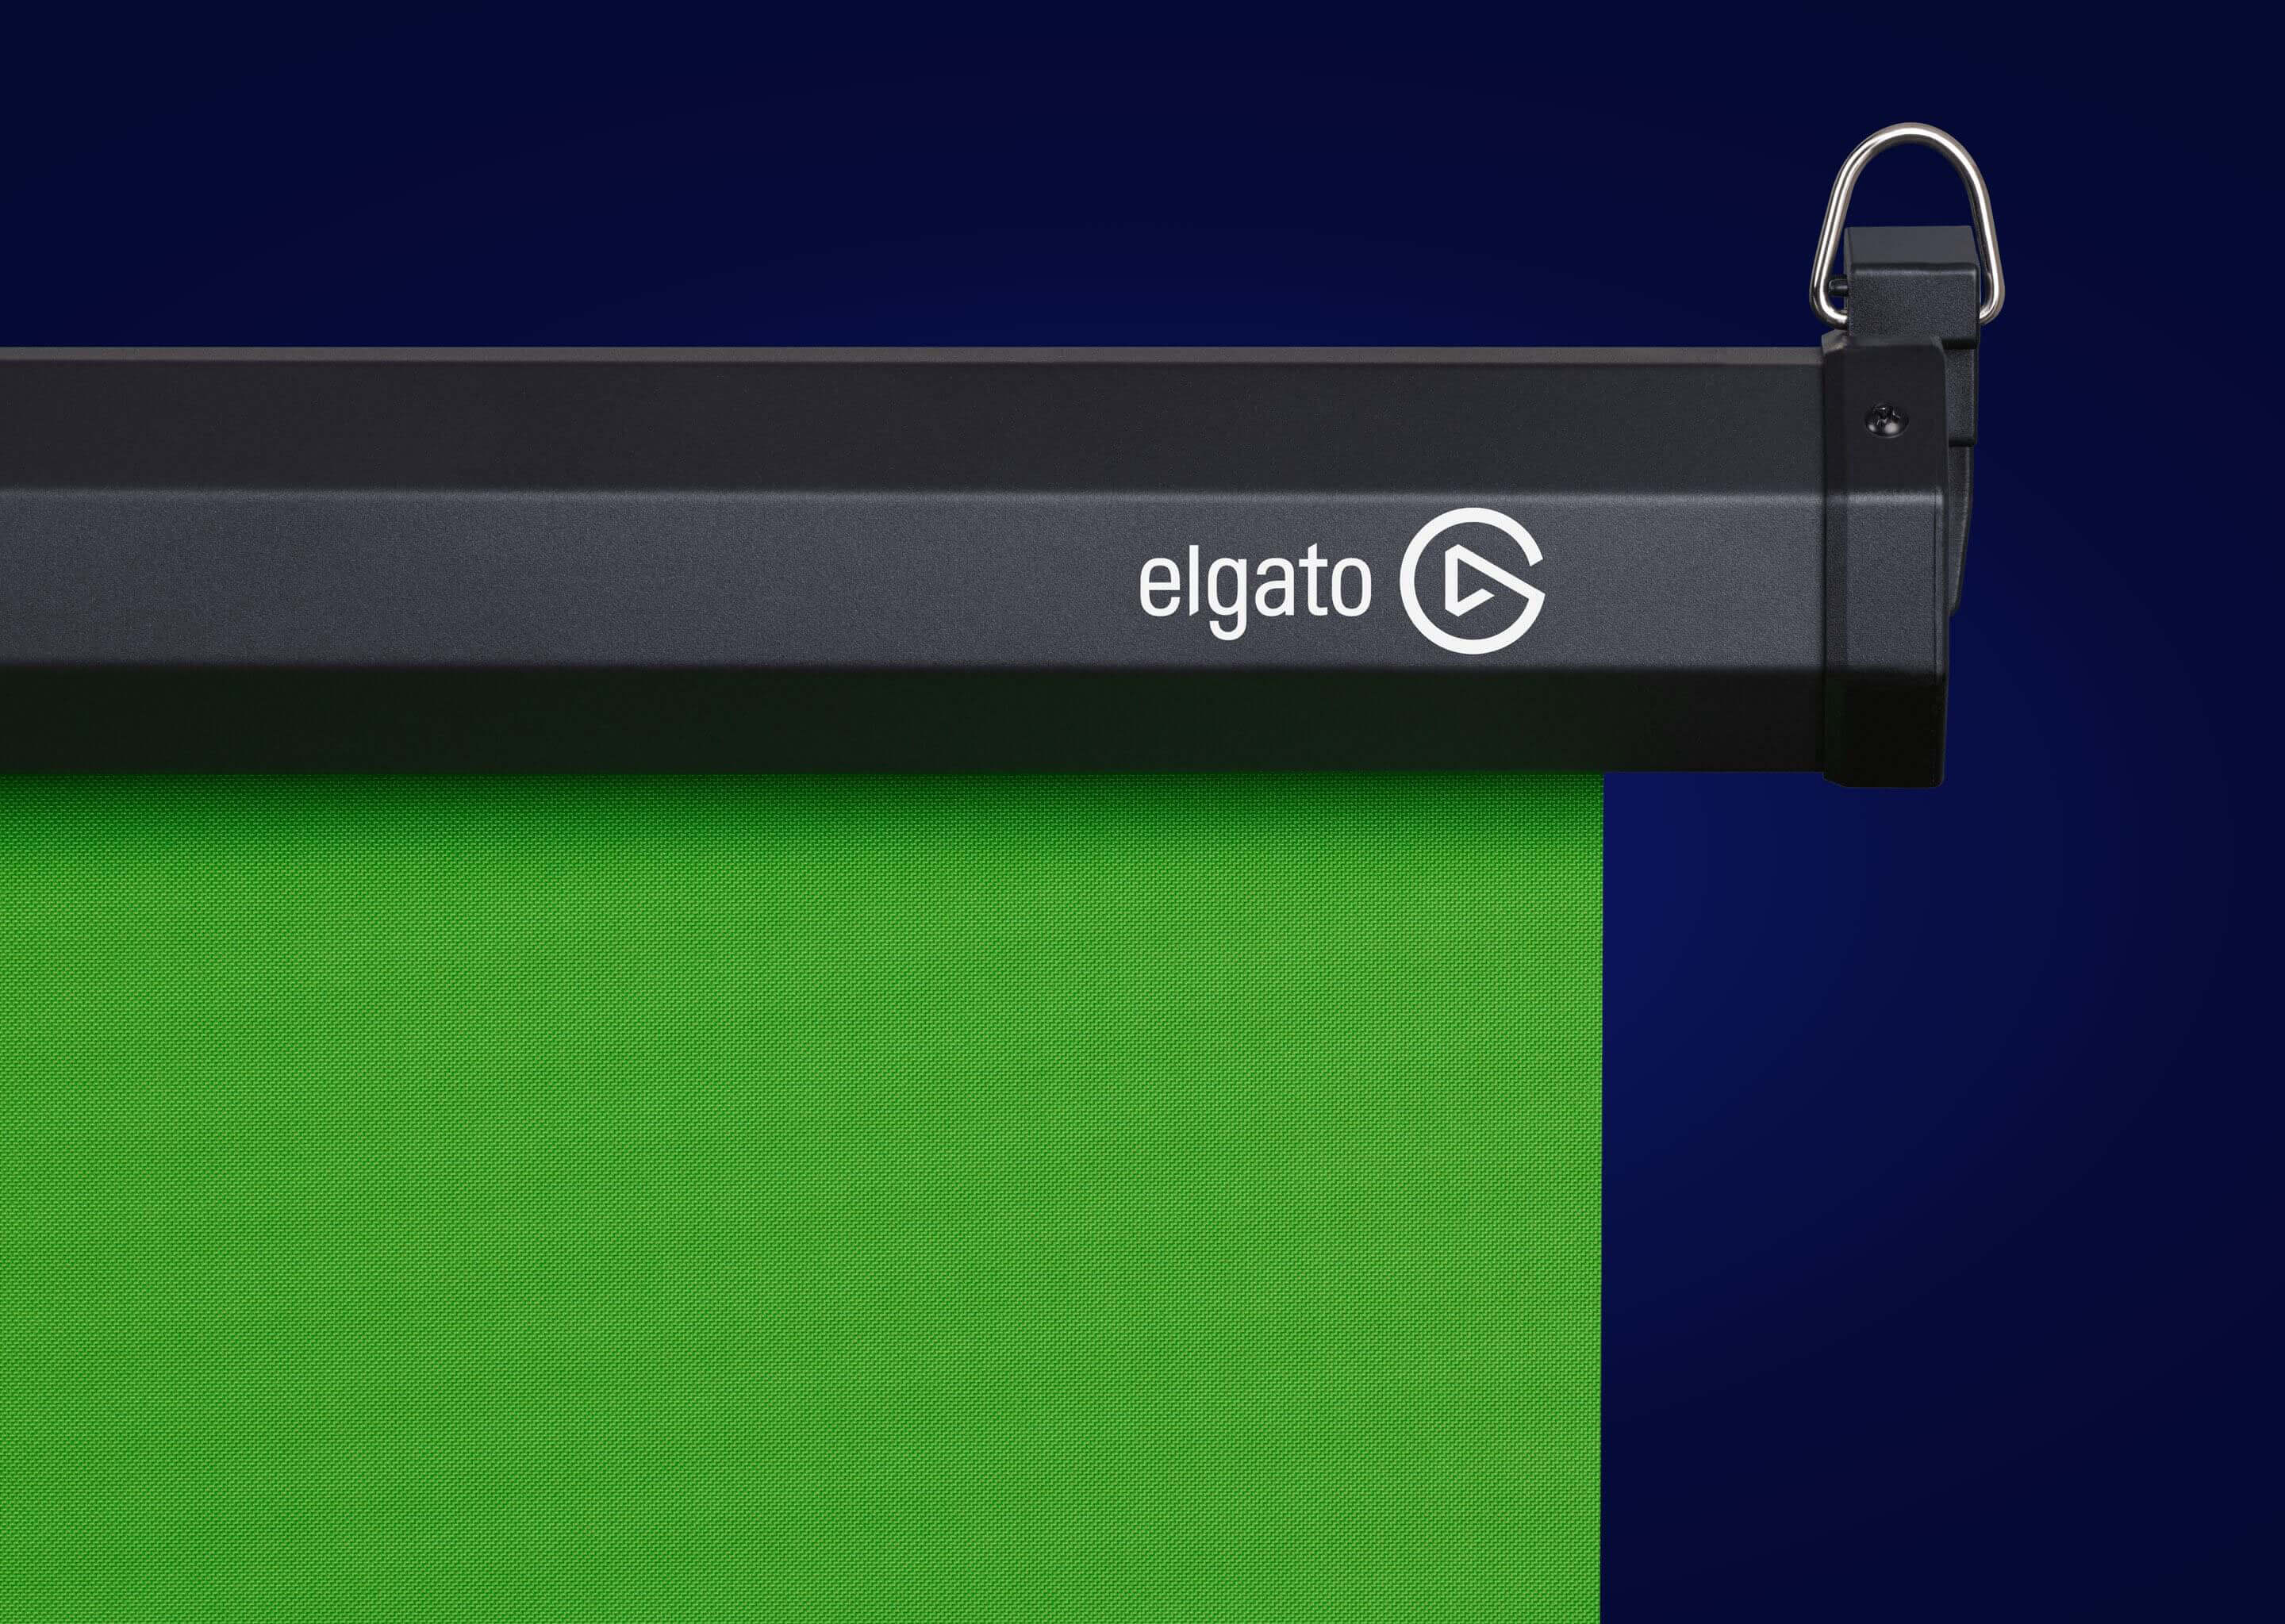 https://www.elgato.com/themes/custom/smalcode/image/products/green-screen-mt/panel-4-bg.jpg